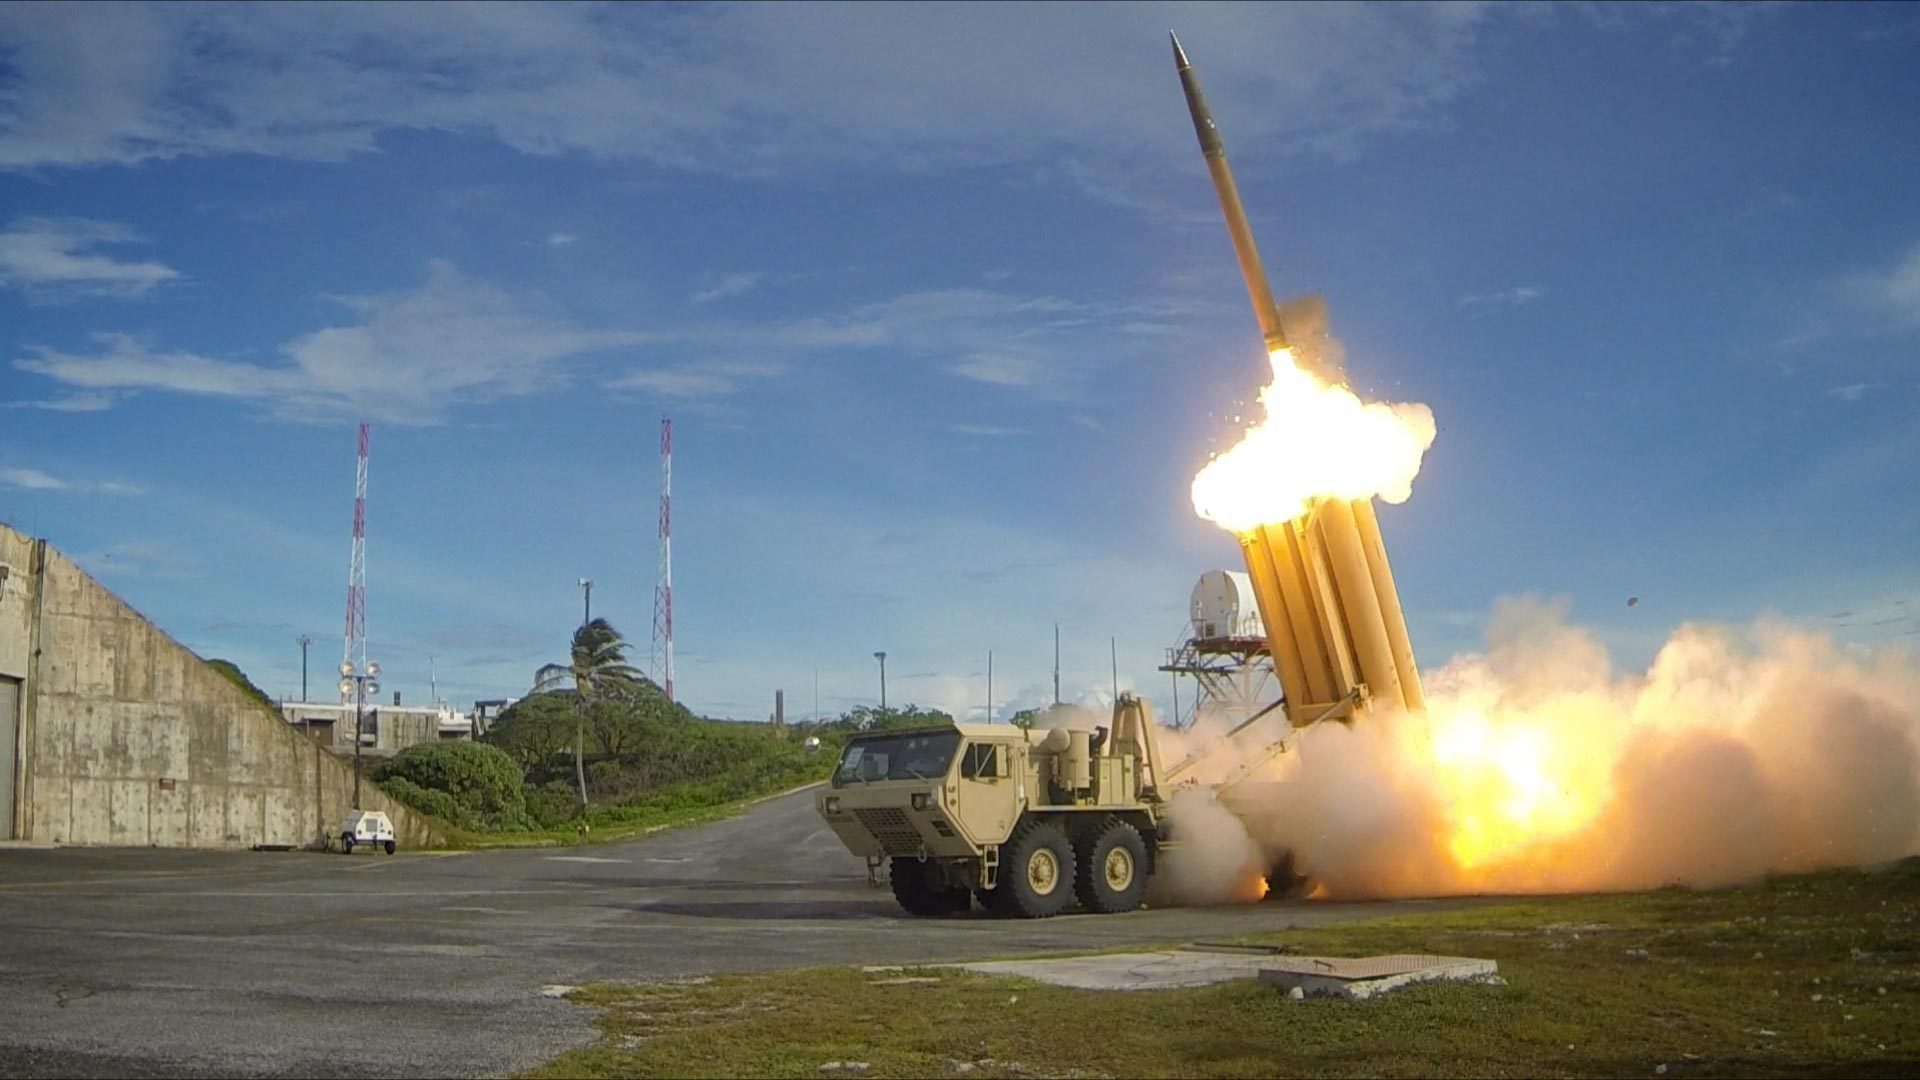 Terminal High Altitude Area Defense (THAAD) interceptor is launched during test.